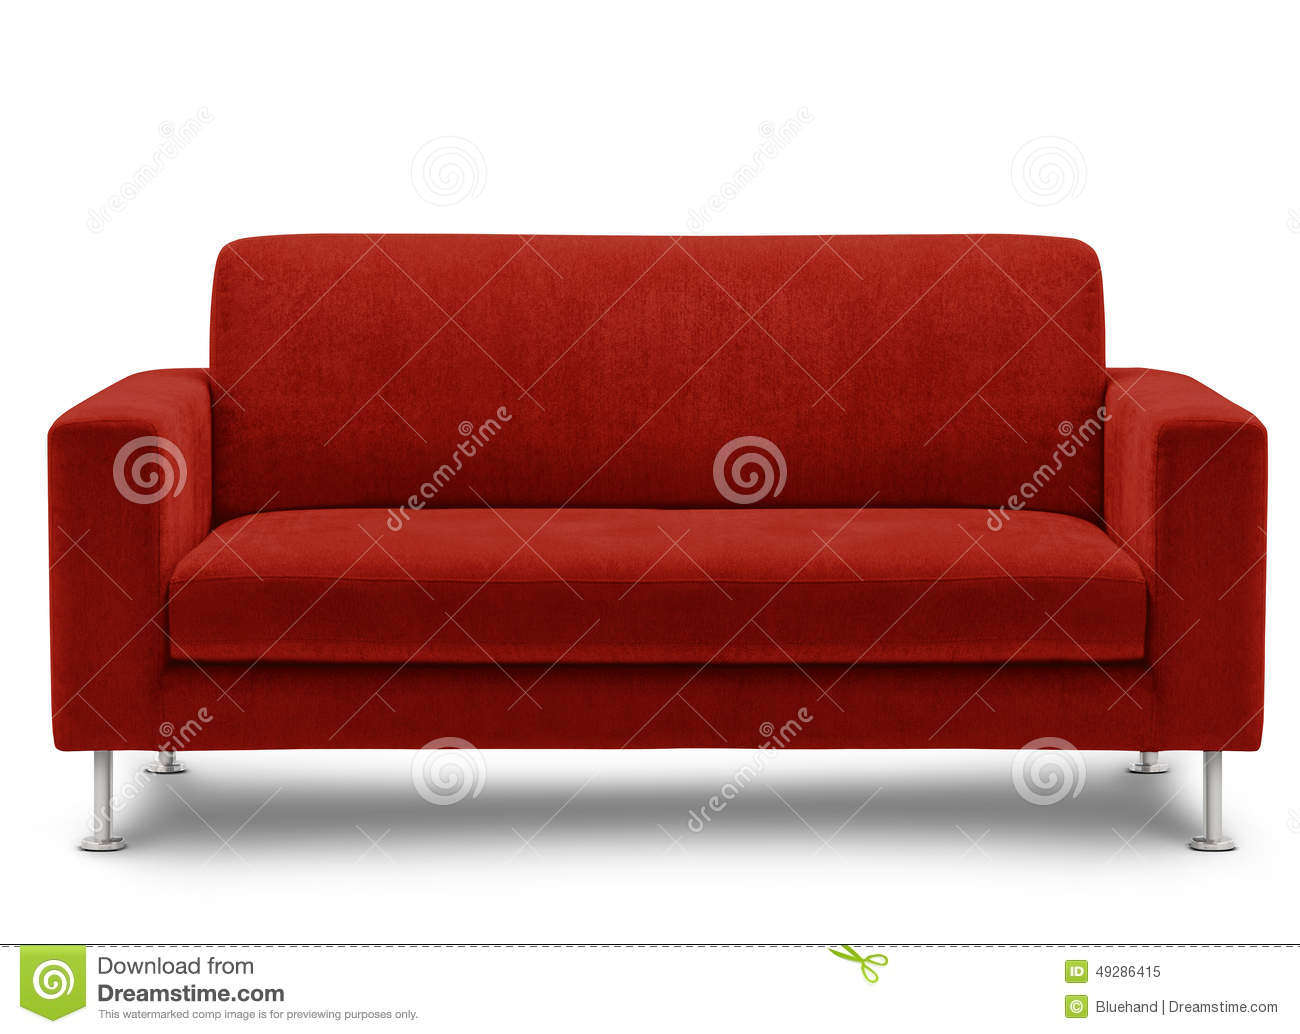 Sofa furniture isolated on white background stock photo for Red white sofa